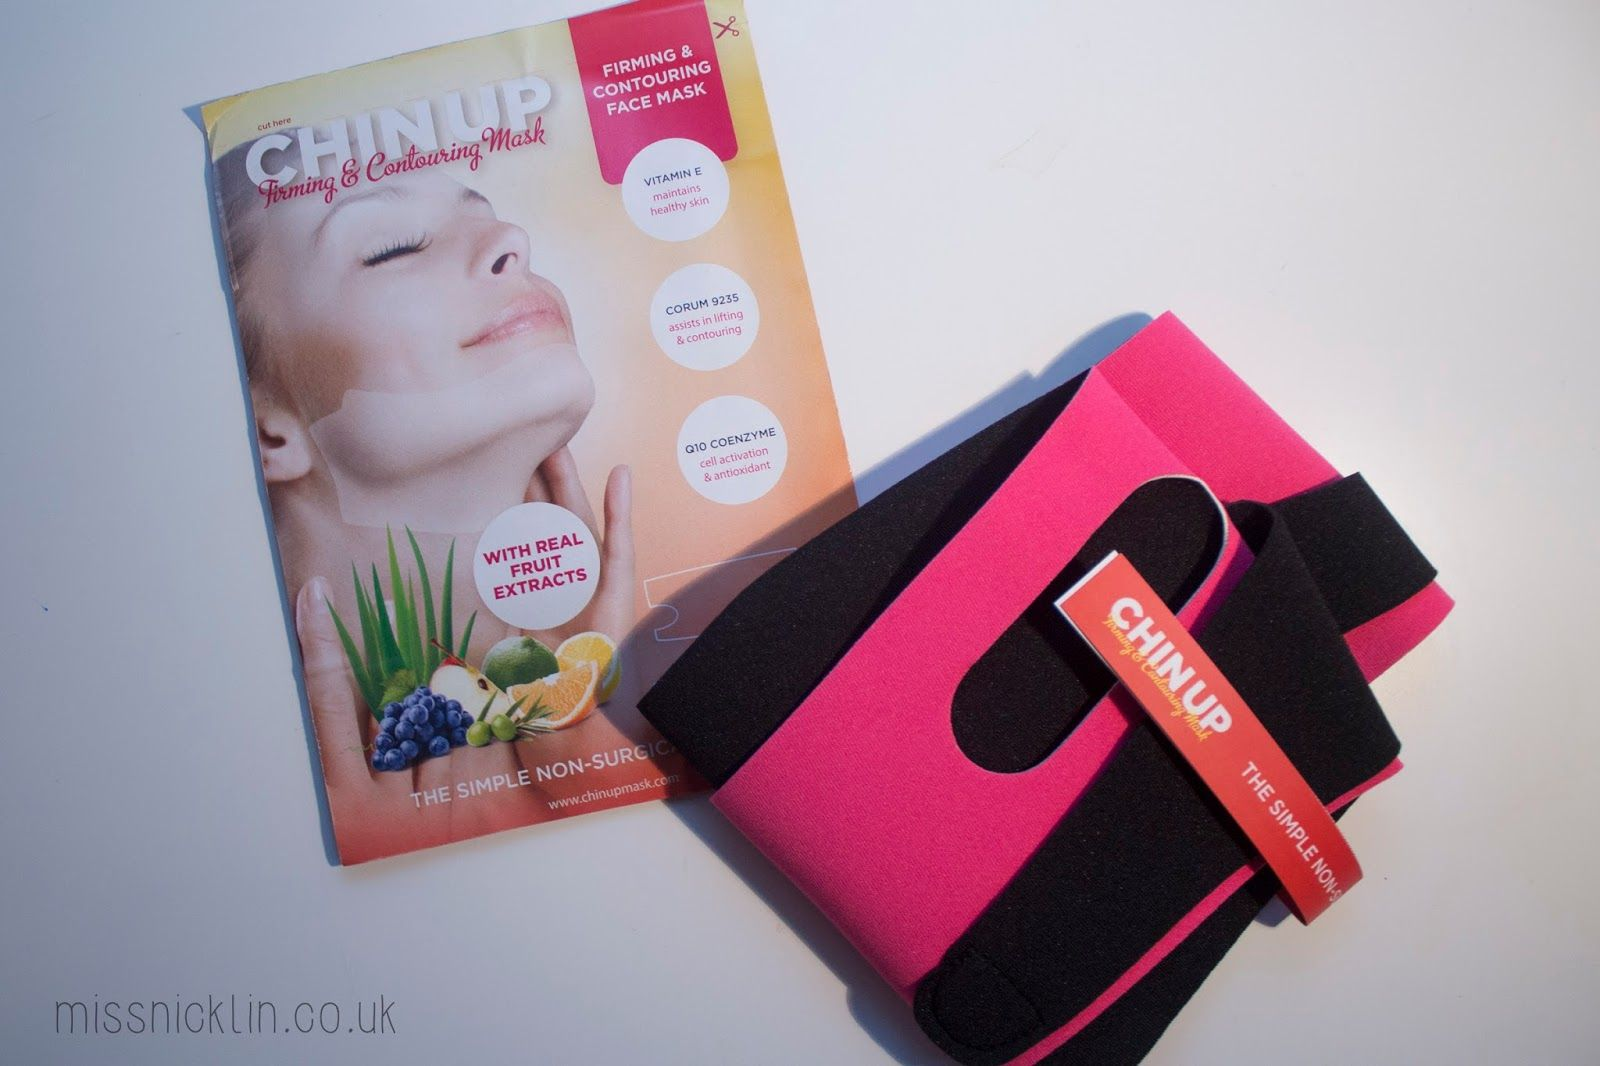 'The Facelift Without Surgery' ChinUp Mask Review